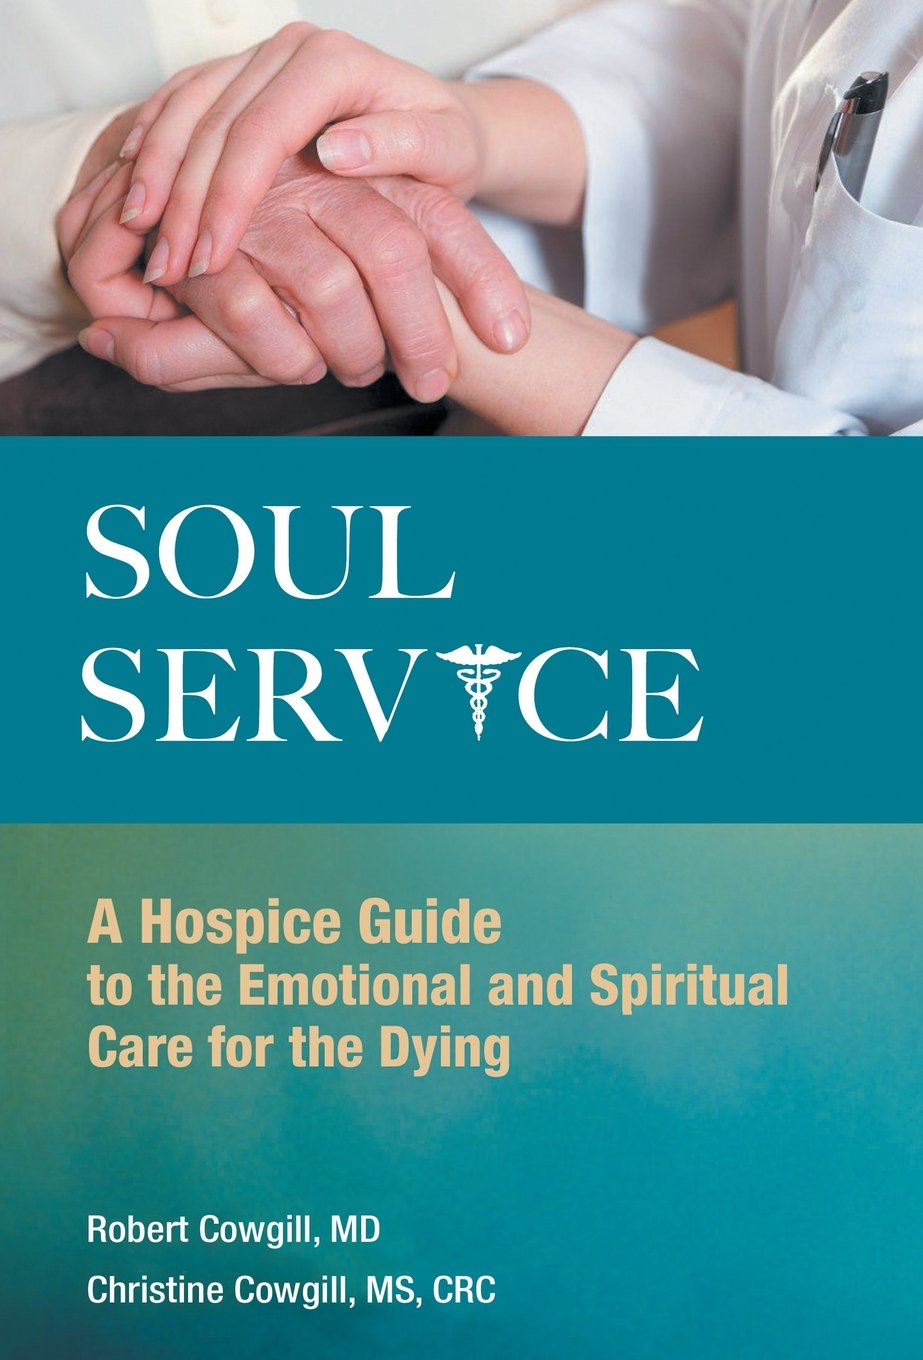 Soul Service: A Hospice Guide to the Emotional and Spiritual Care for the Dying pdf